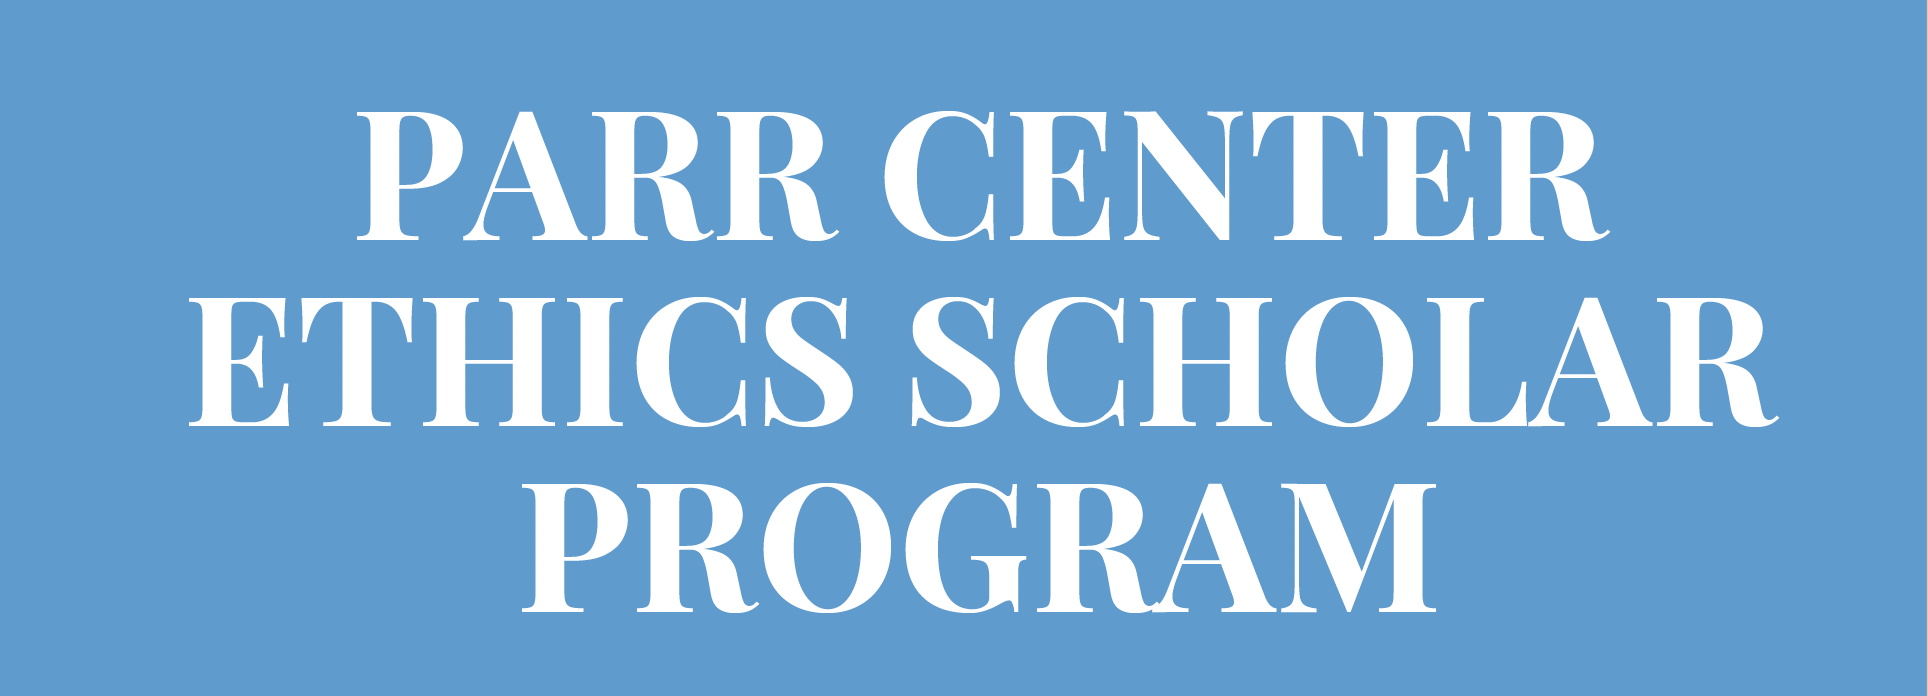 """Parr Center Ethics Scholar Program"""